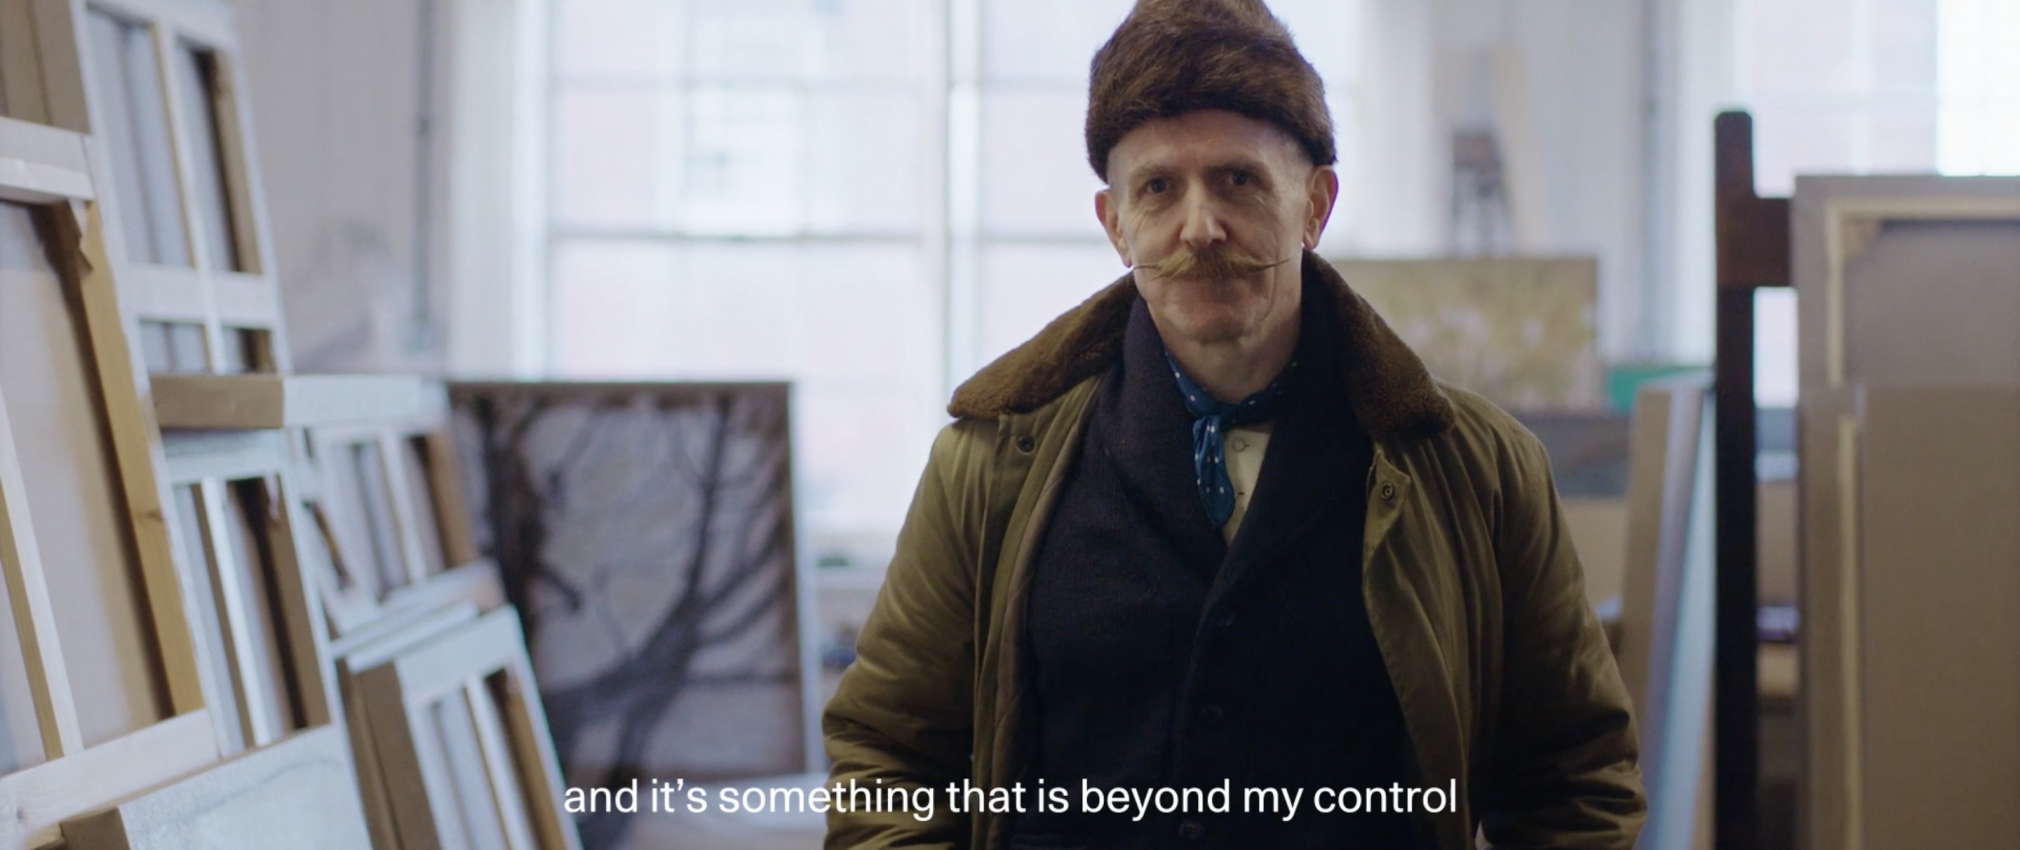 The Future of Art According to Billy Childish, April 2020